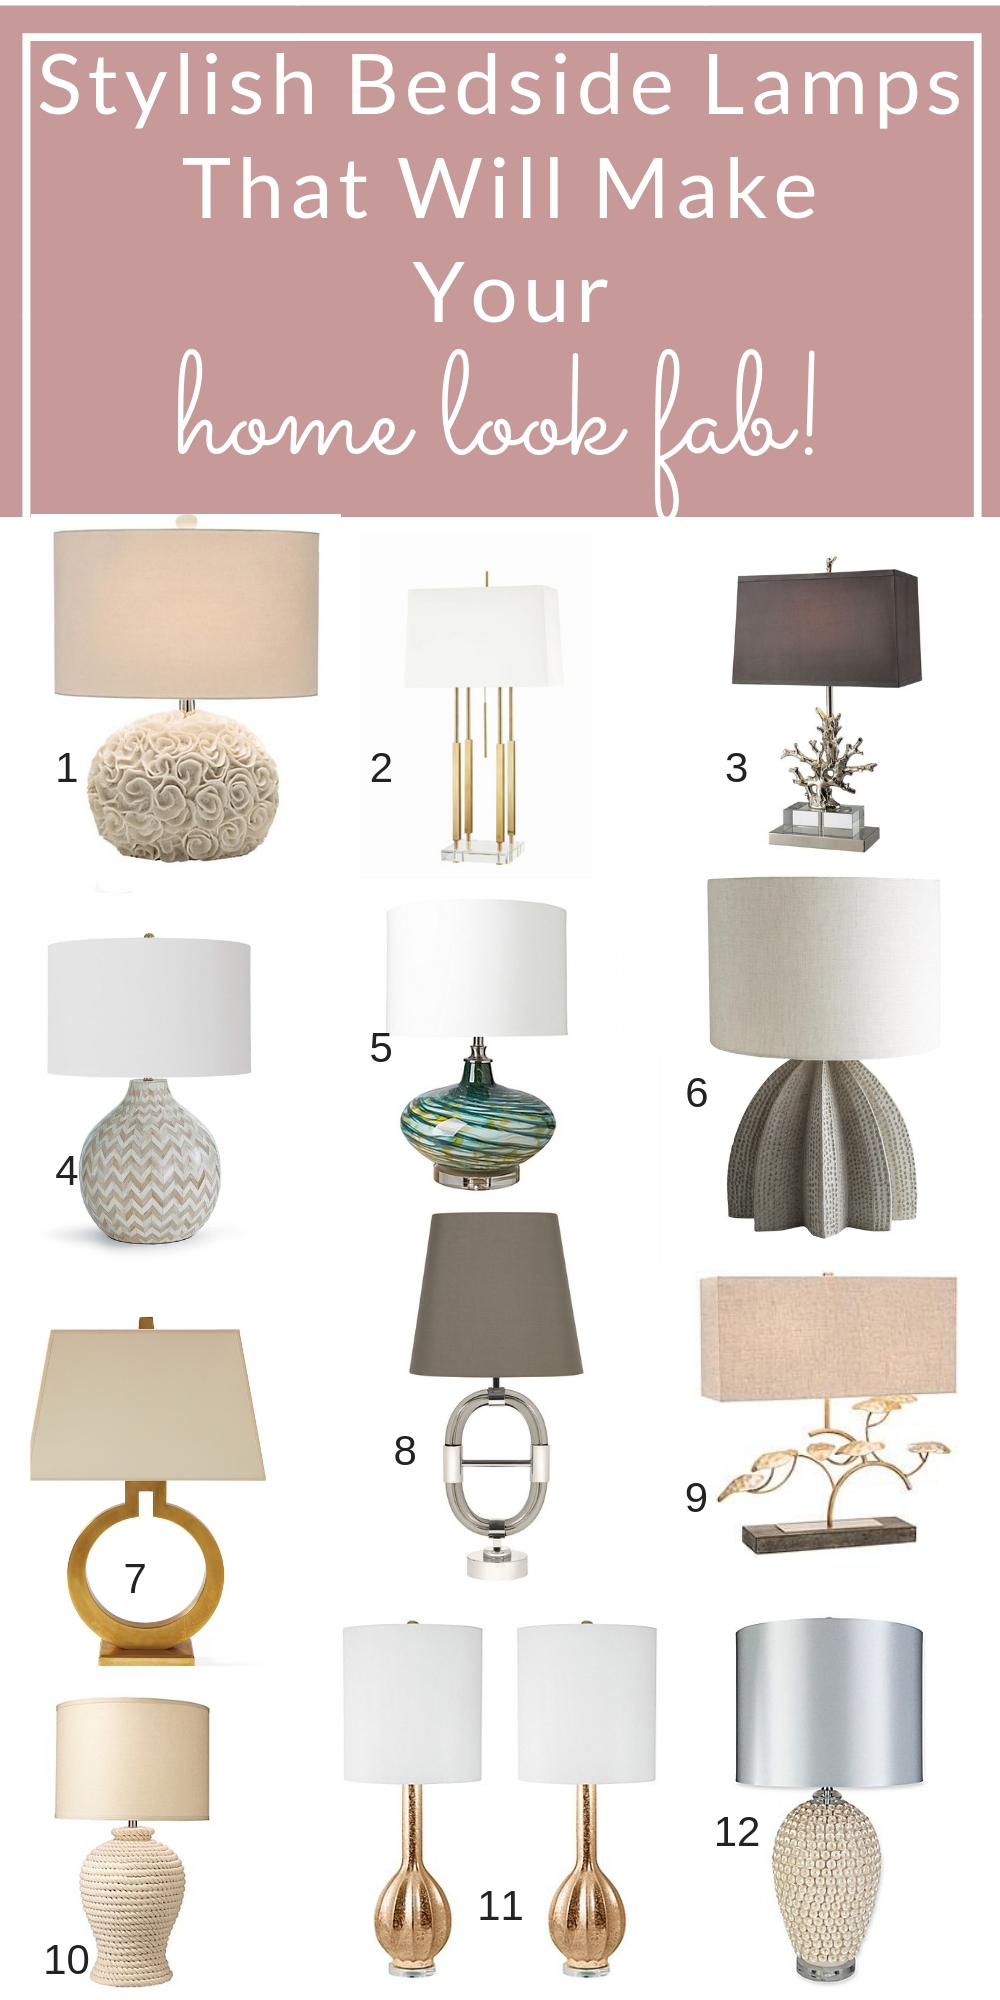 Add style, sophistication and light to your room with these stylish bedside table lamps. #homedecor #tablelamps #bedroomdecor